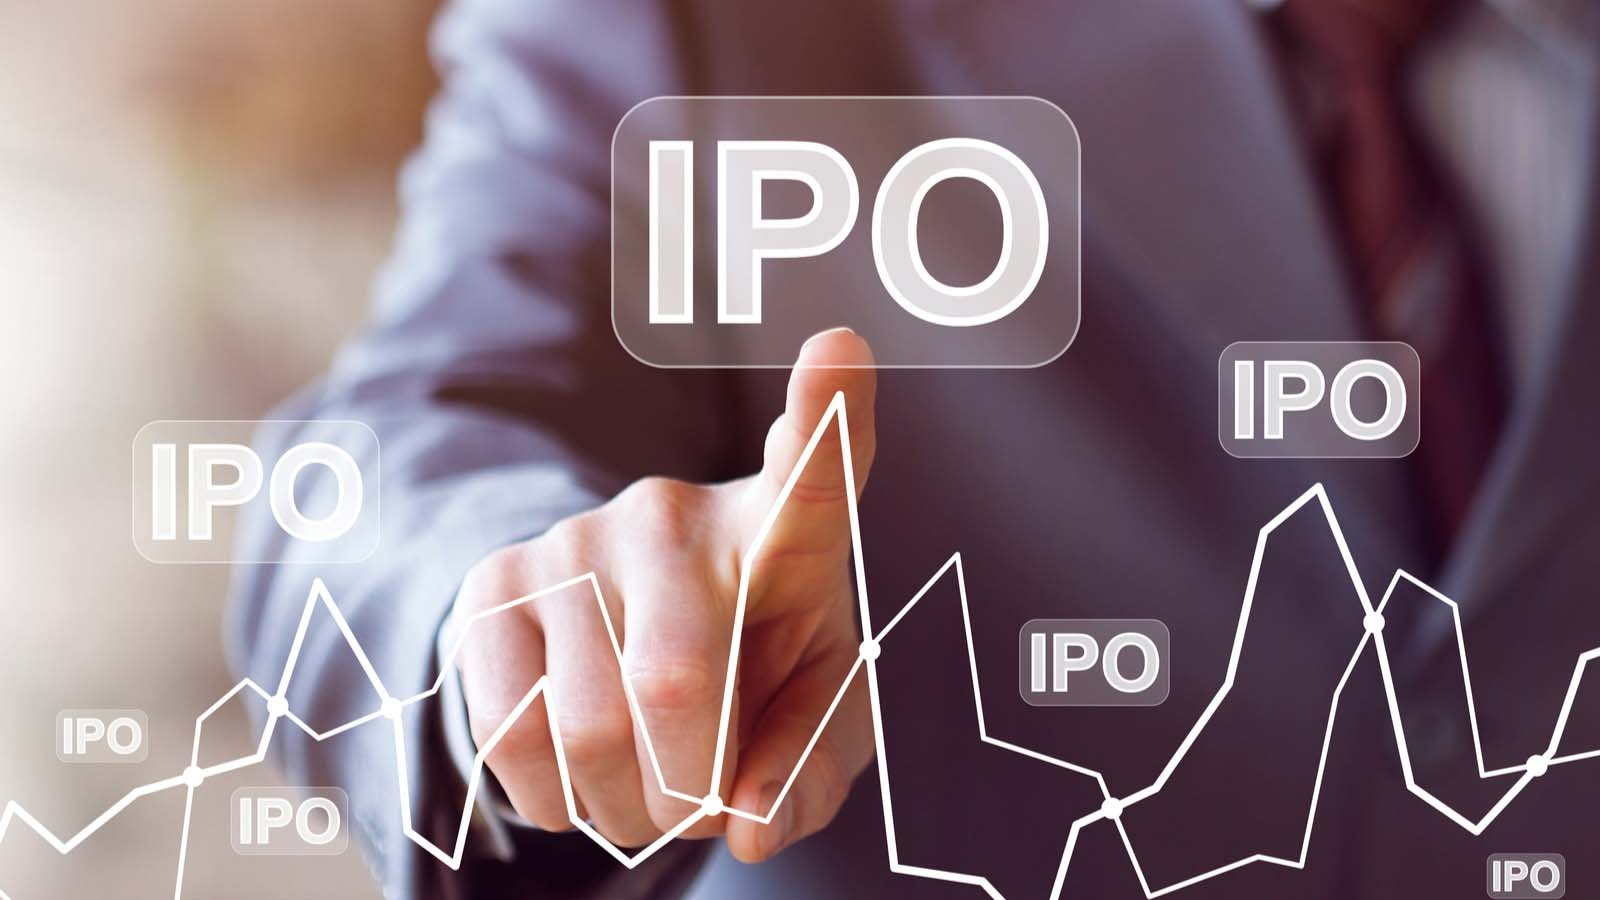 7 Upcoming IPOs to Watch: Asana, Palantir, GoodRx | InvestorPlace